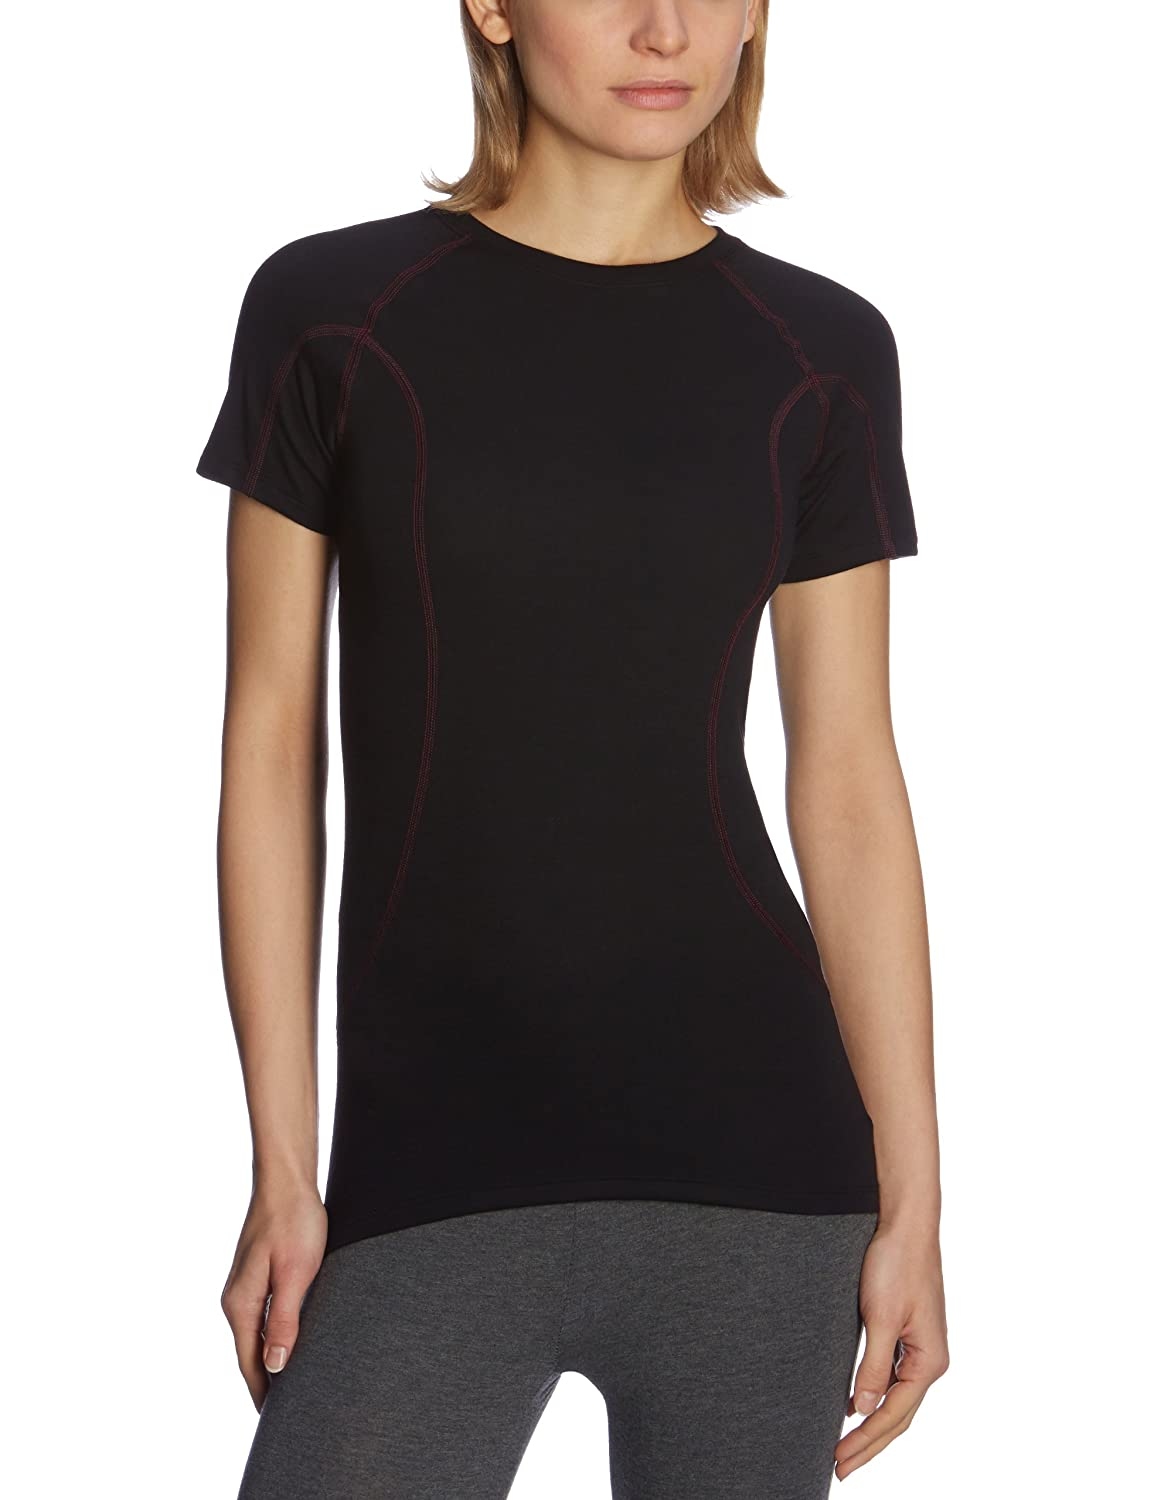 Schiesser Damen Thermo Light Funktions-Shirt 135304 jetzt bestellen